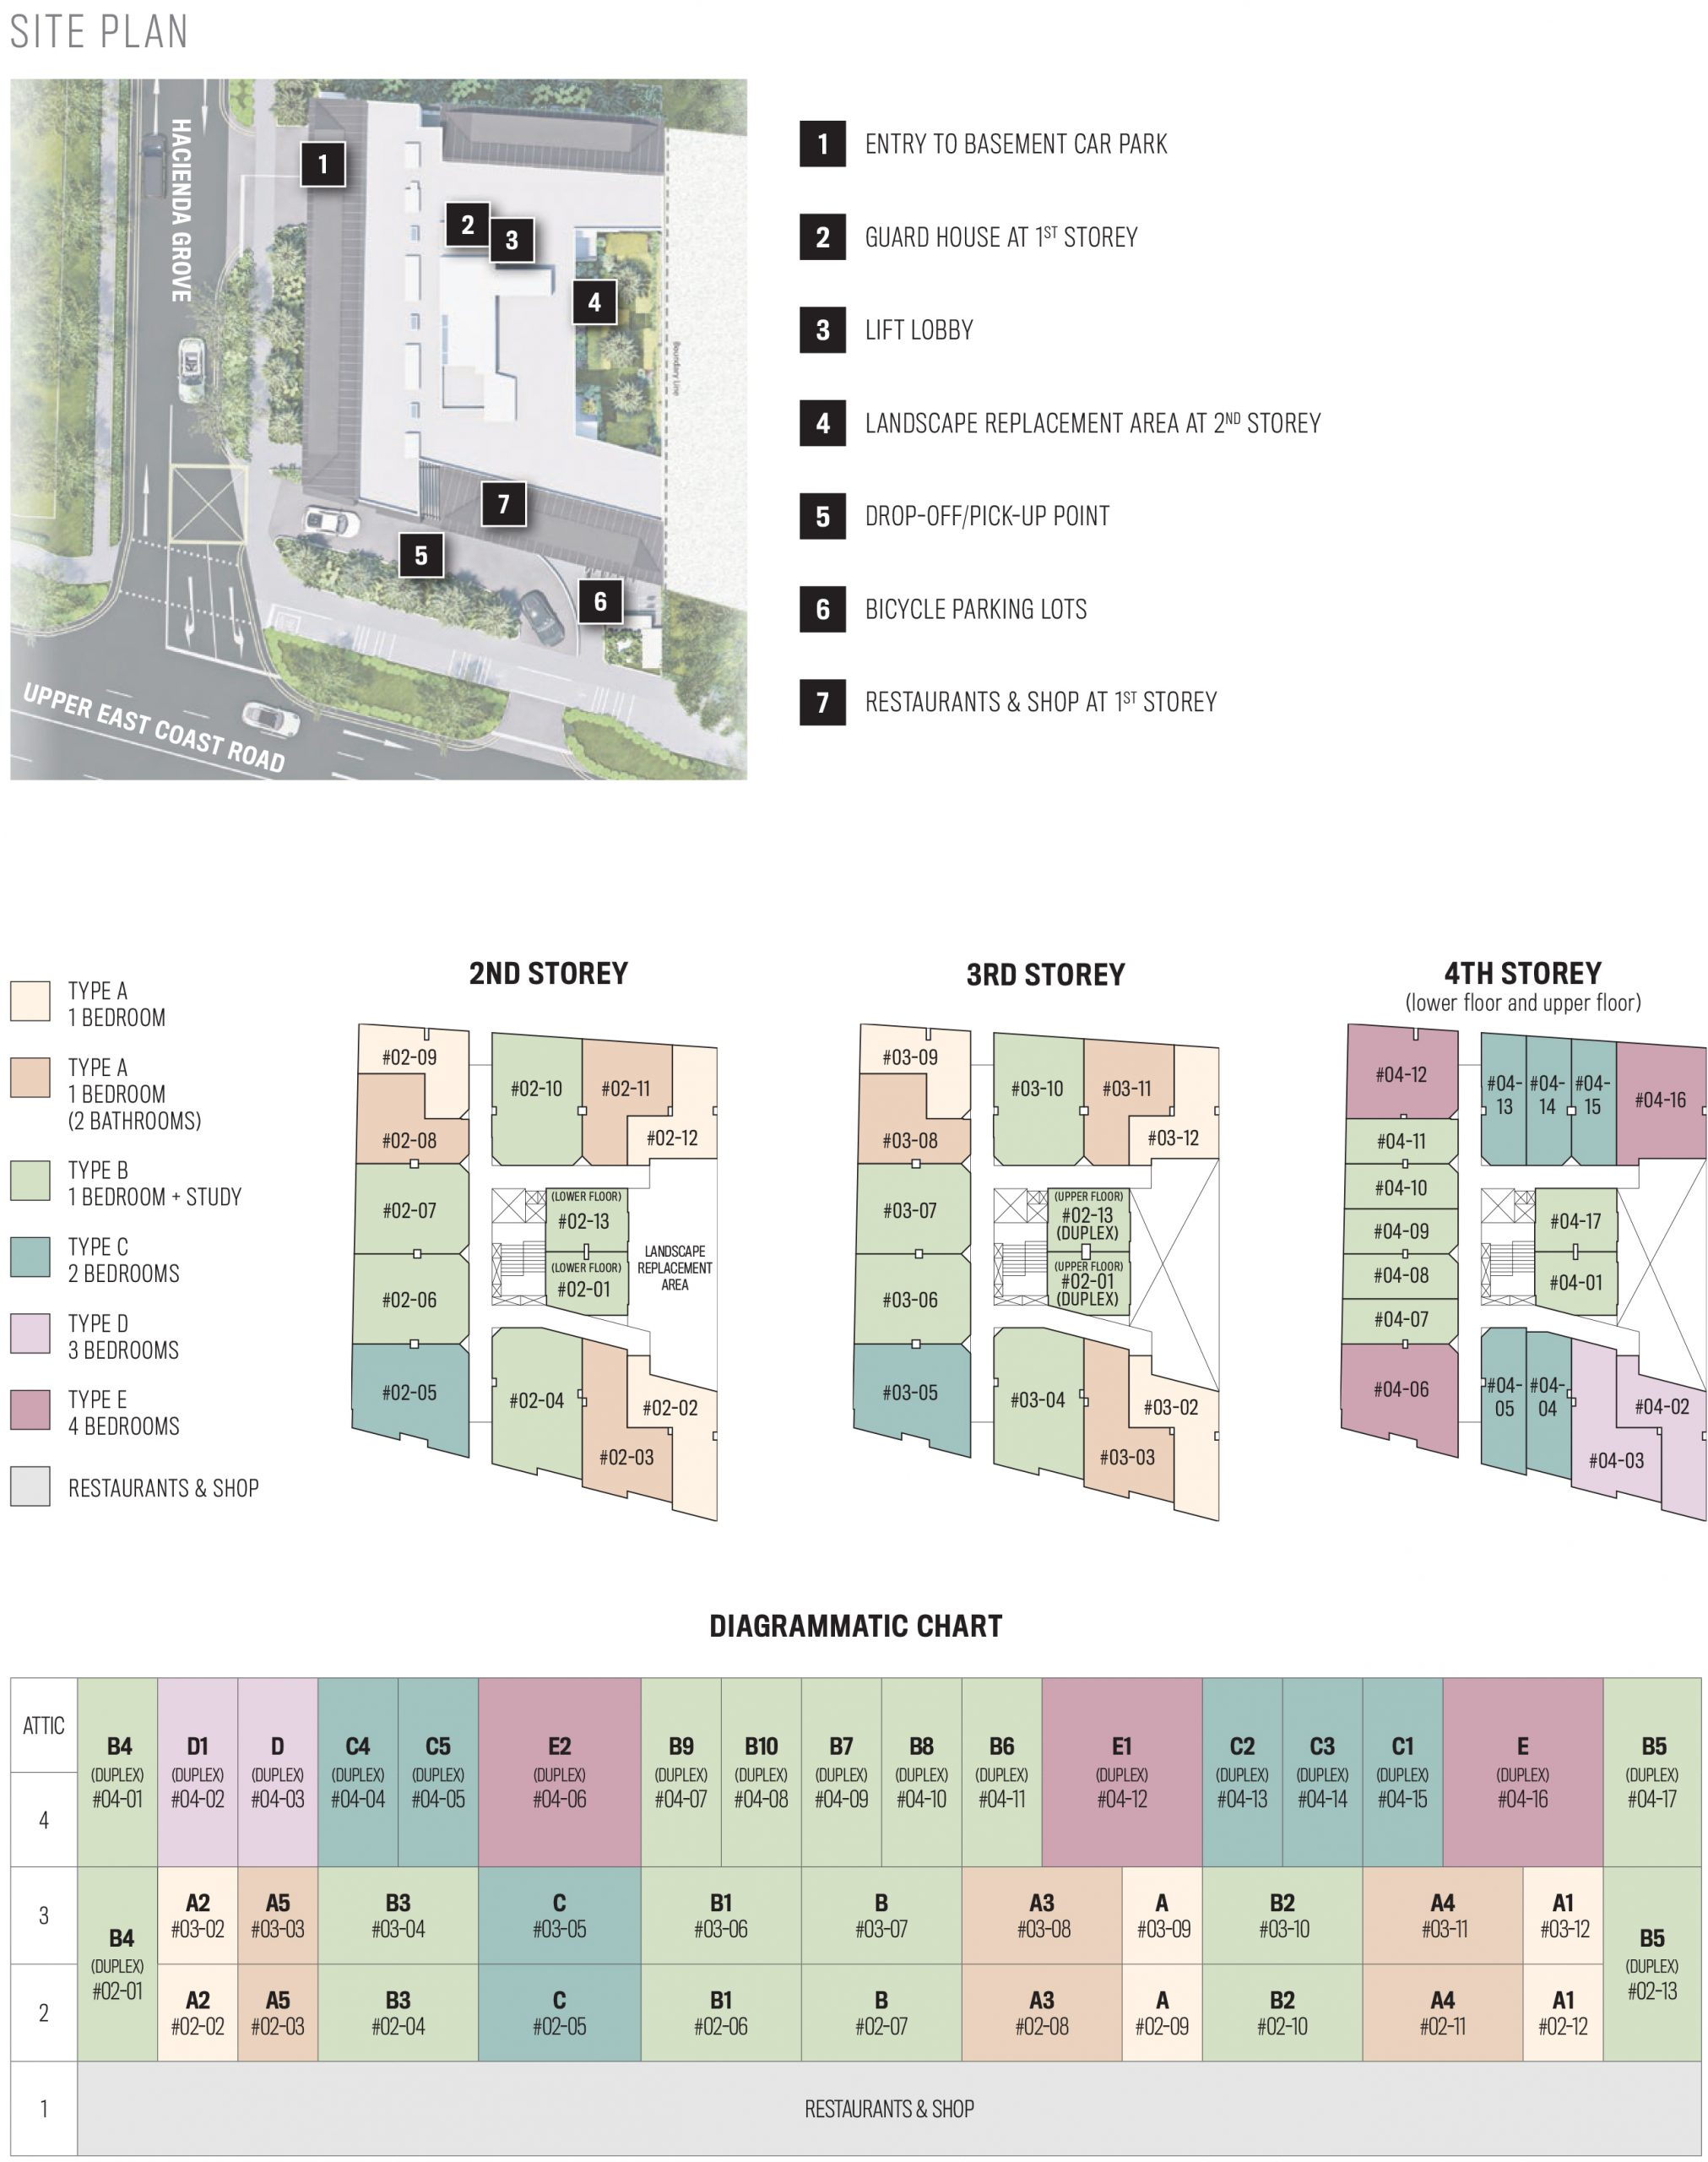 77-@-East-Coastnew-condo-singapore-site-plan-scaled